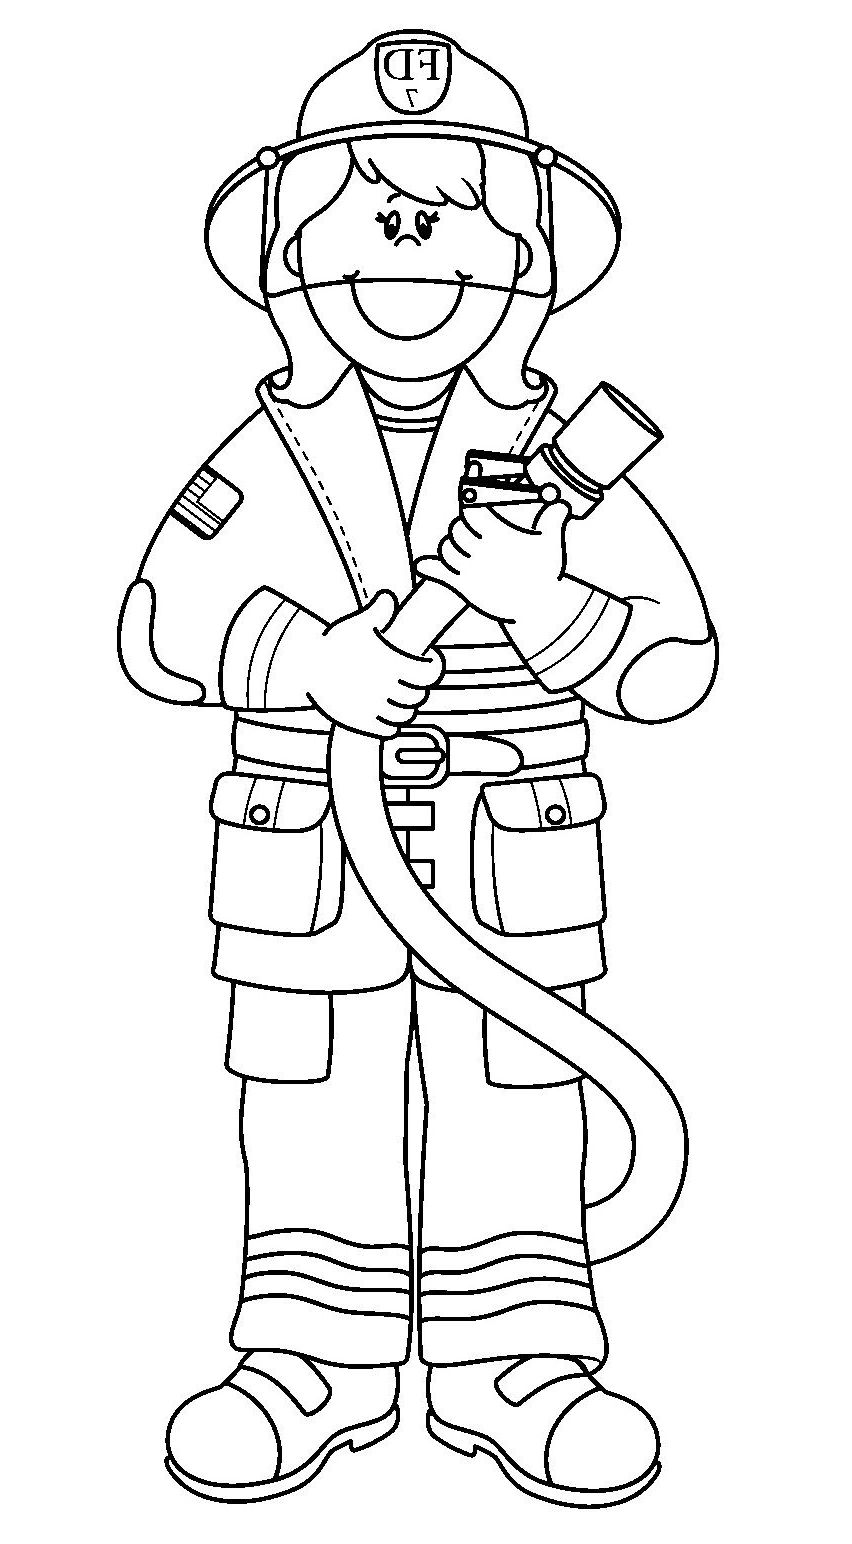 25+ Amazing Image of Fireman Coloring Pages (With images